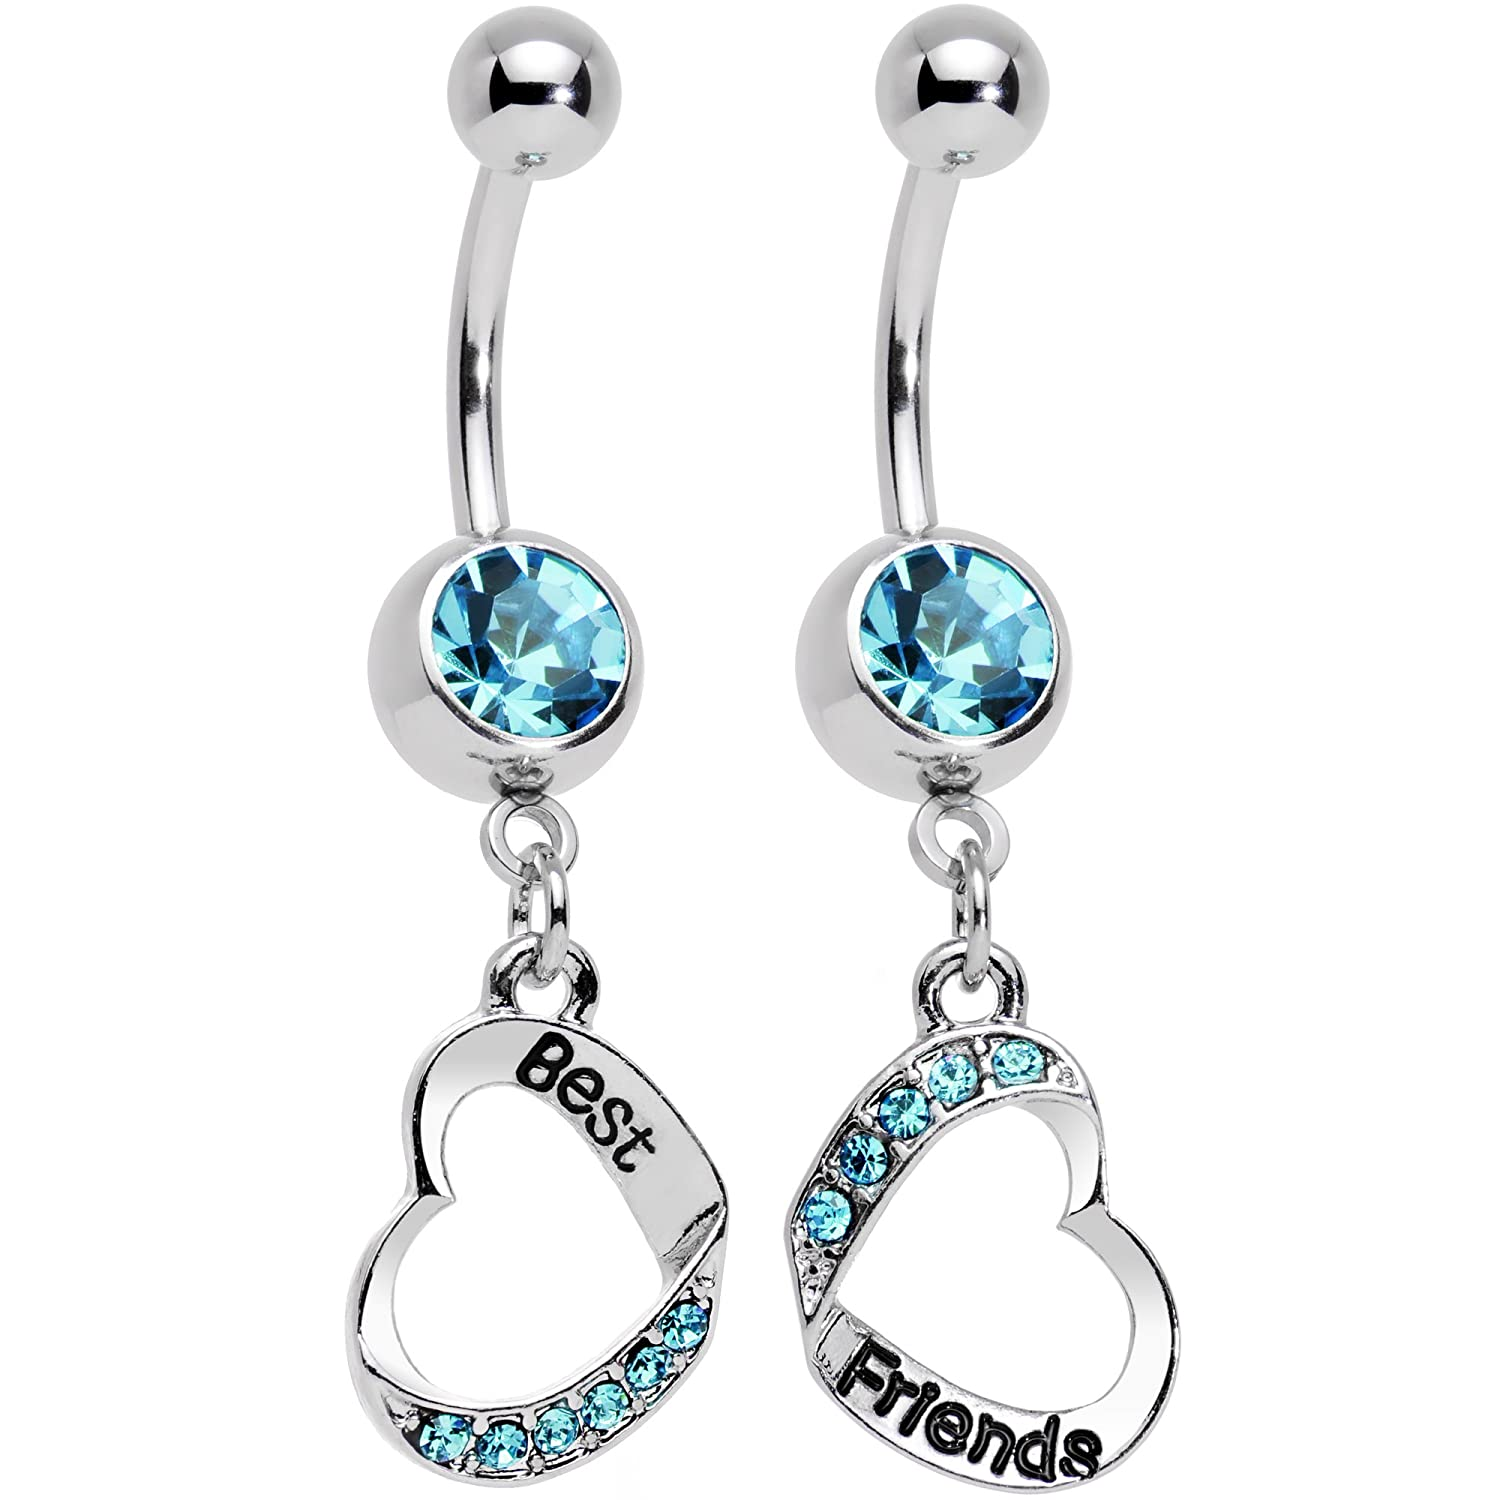 Body Candy Stainless Steel Baby Blue Accent Best and Friends Matching Heart Dangle Belly Ring Set 58622